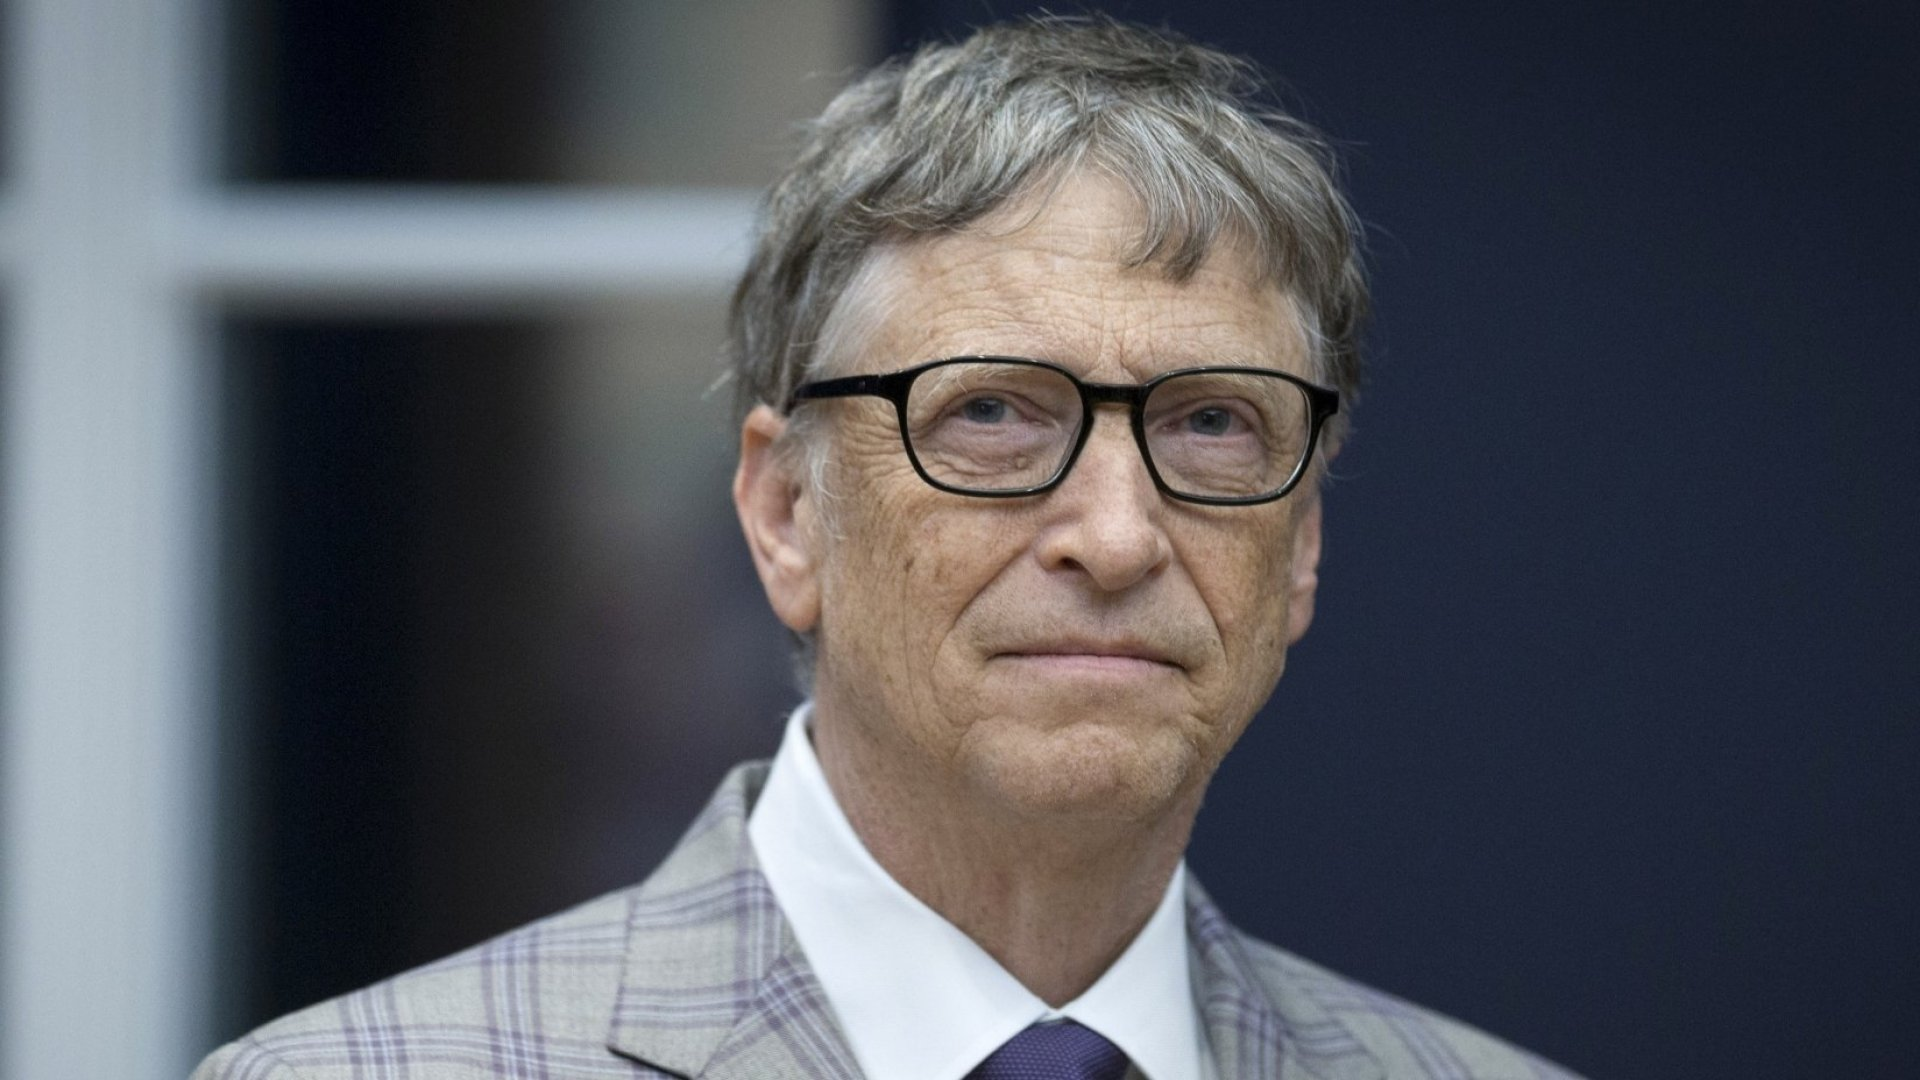 Bill Gates's Plan to Deal With Job-Stealing Robots: Just Tax Them